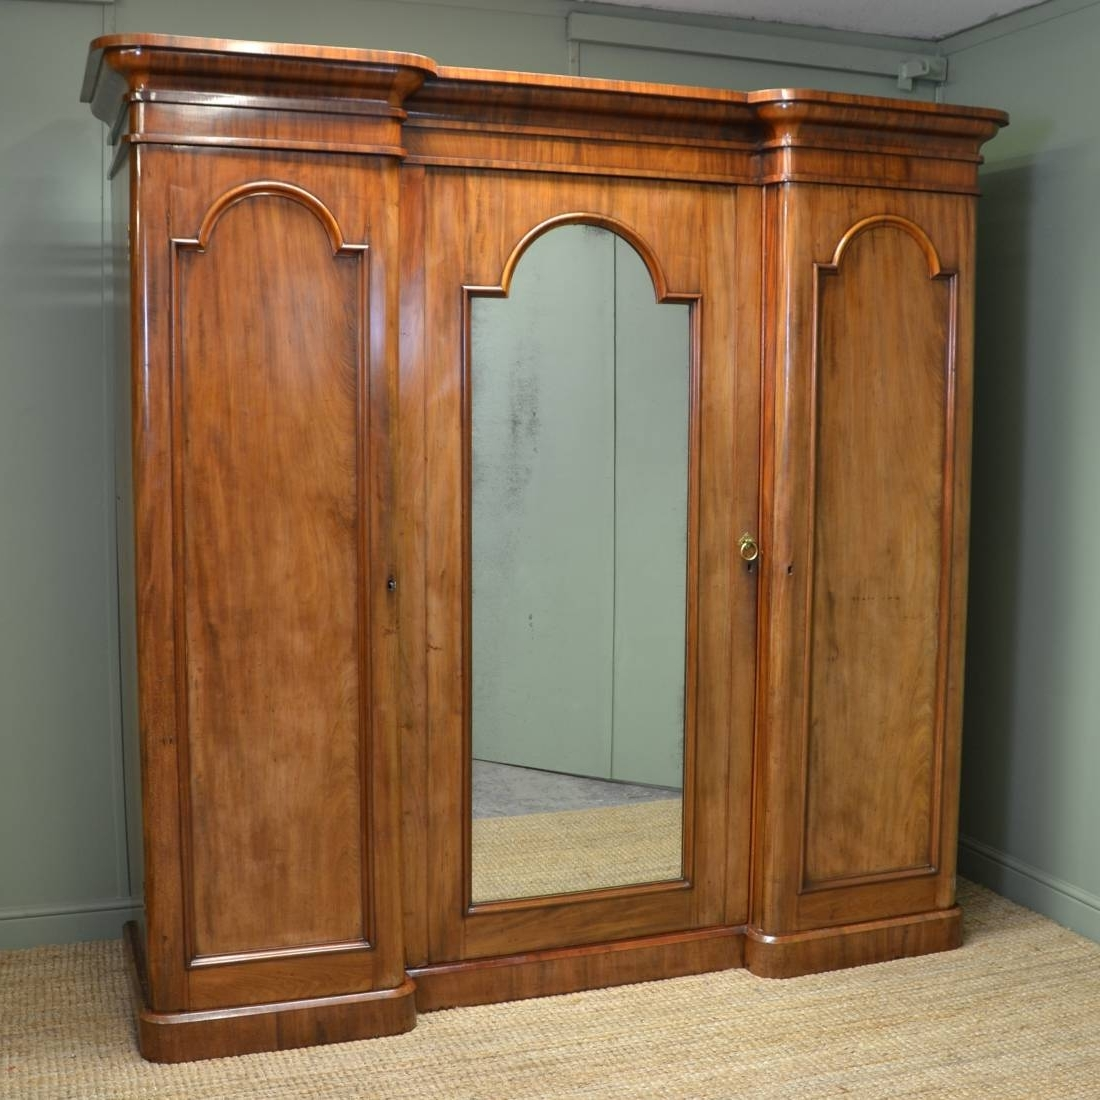 Recent Large Victorian Mahogany Antique Triple Wardrobe – Antiques World In Victorian Mahogany Breakfront Wardrobes (View 11 of 15)